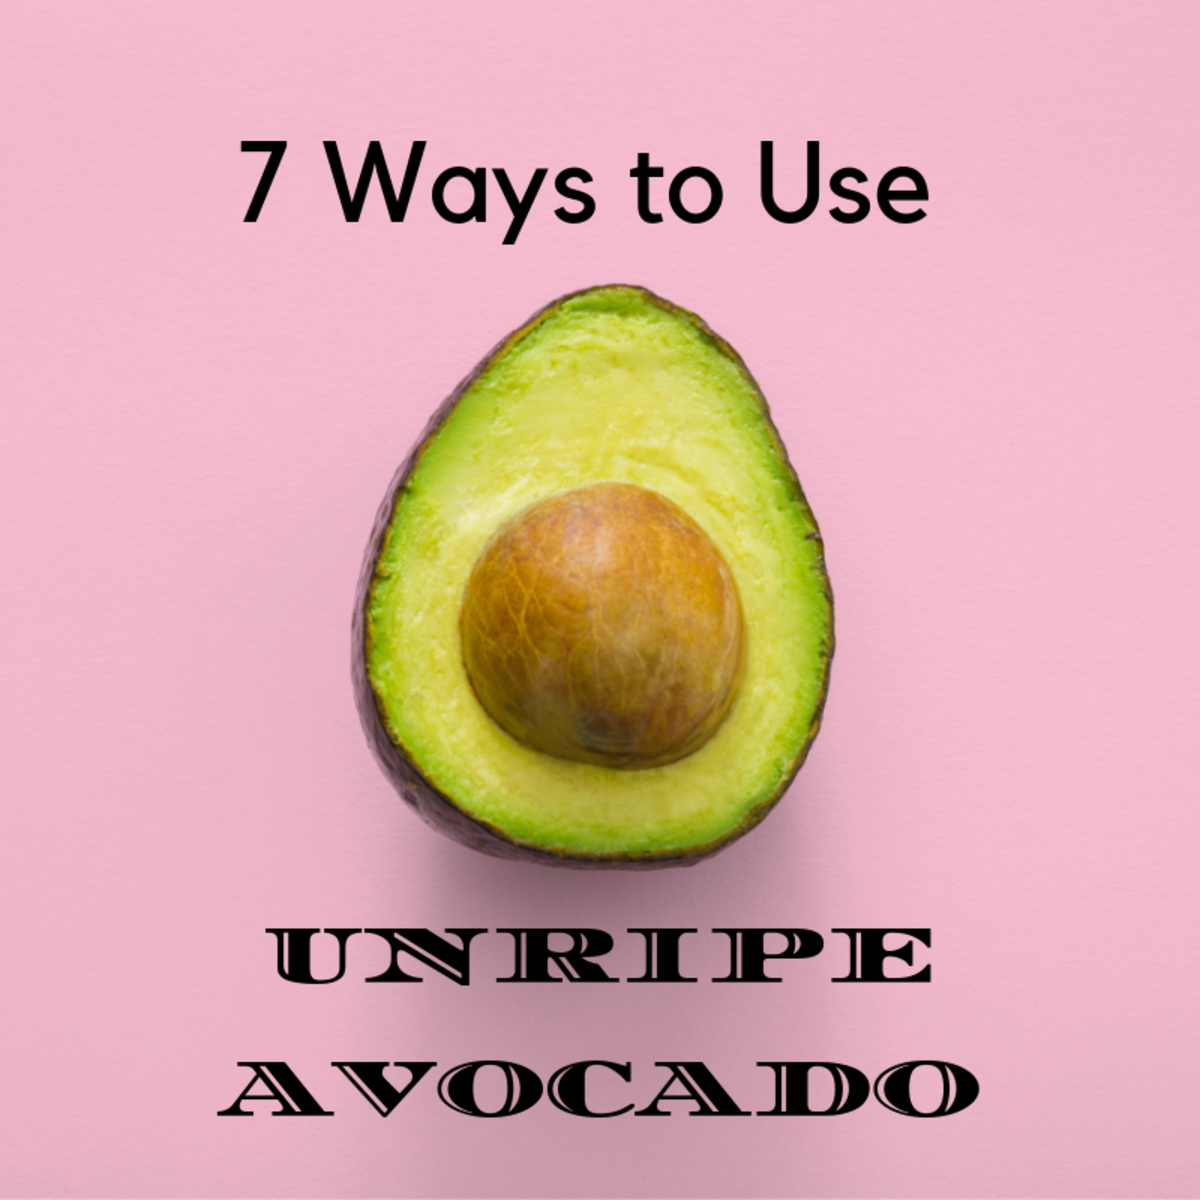 Have you ever thrown away an avocado just because it wasn't ripe?